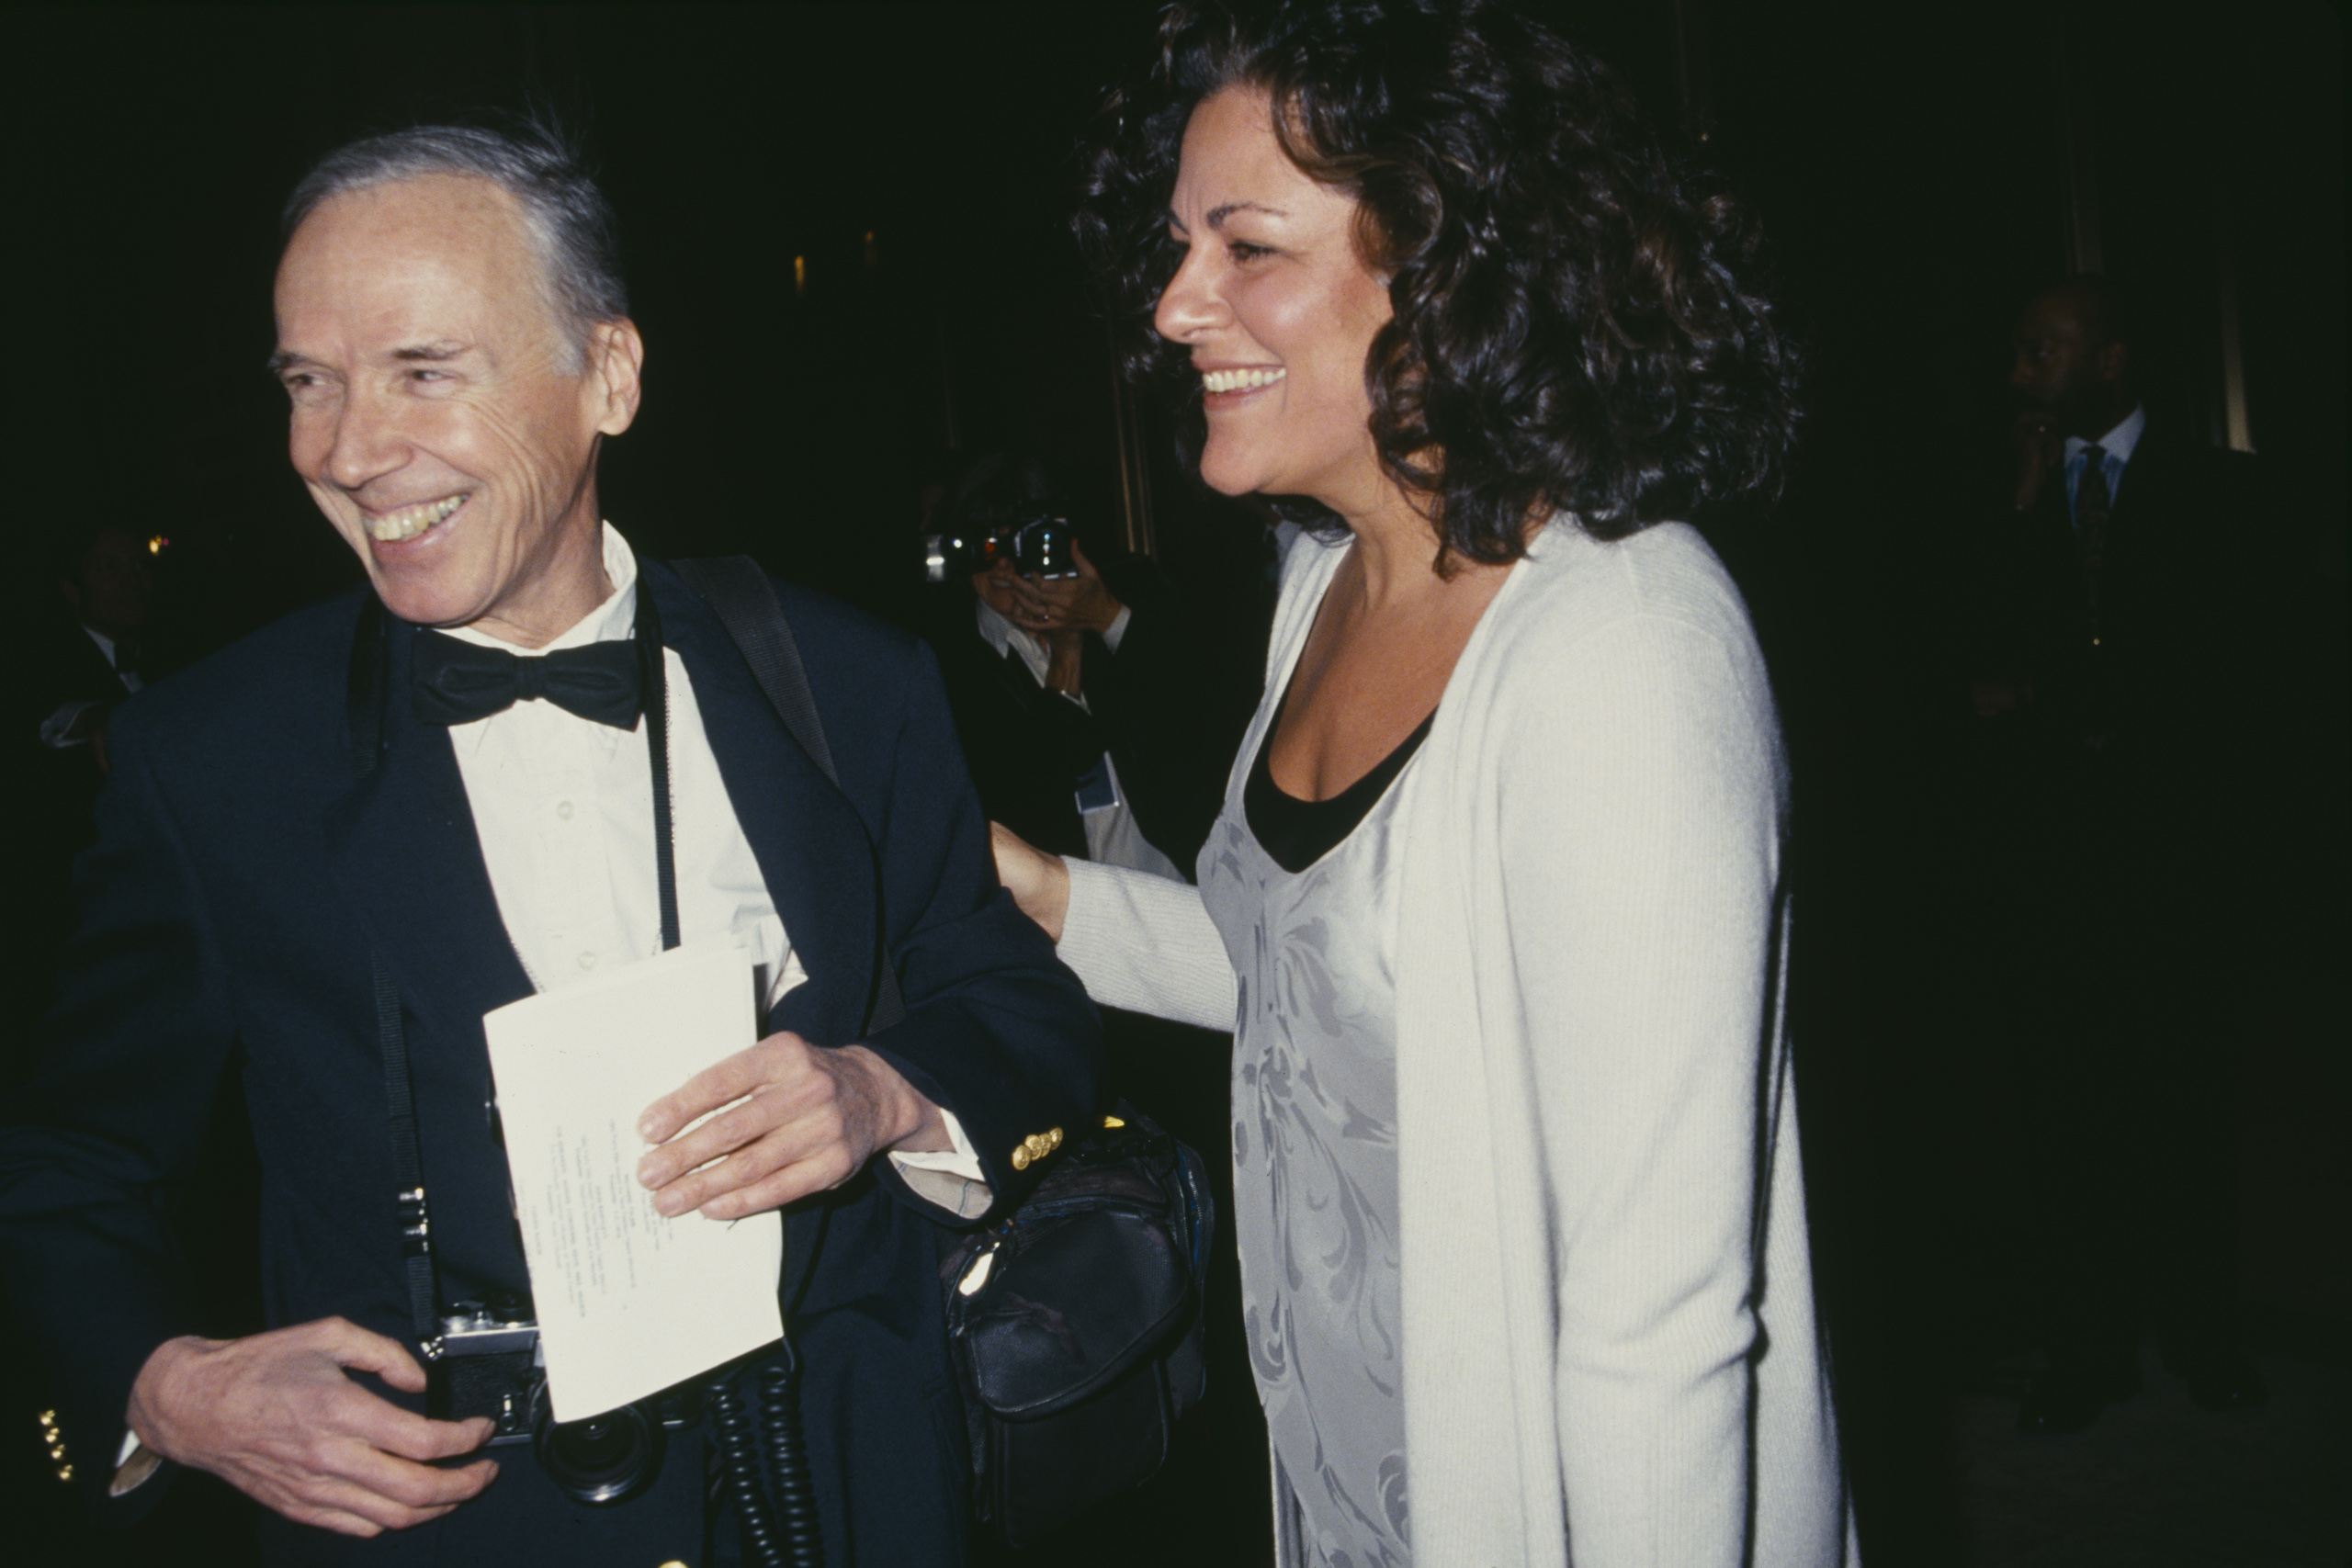 American fashion photographer Bill Cunningham and Executive Director of the Council of Fashion Designers of America (CFDA), Fern Mallis, at the CFDA Awards, in 1994.